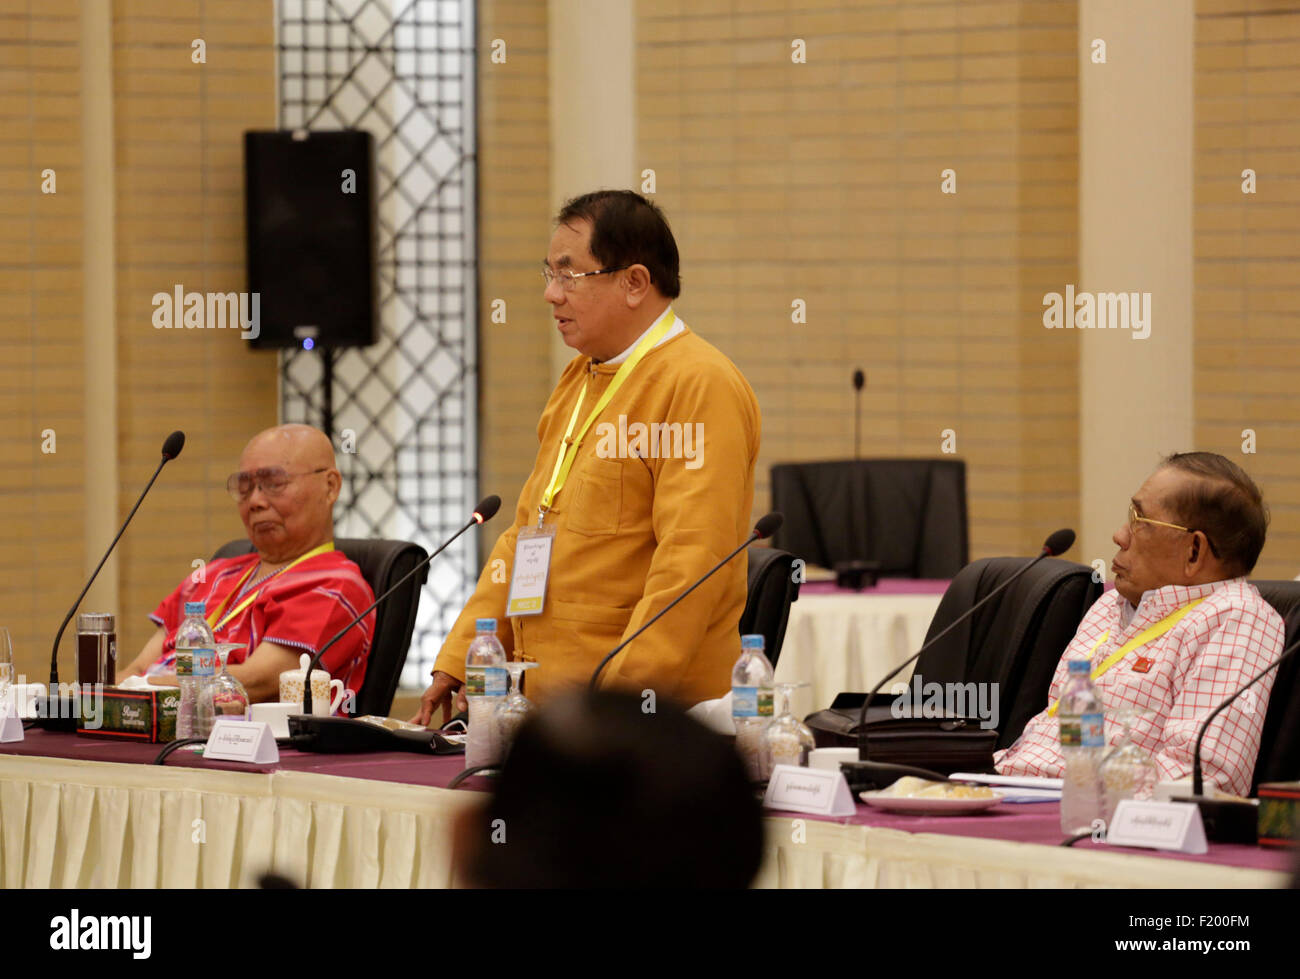 Nay Pyi Taw, Myanmar. 9th Sep, 2015. Shan State Progress Party (SSPP)'s patron Maj-Gen Say Htin (C) speaks during - Stock Image